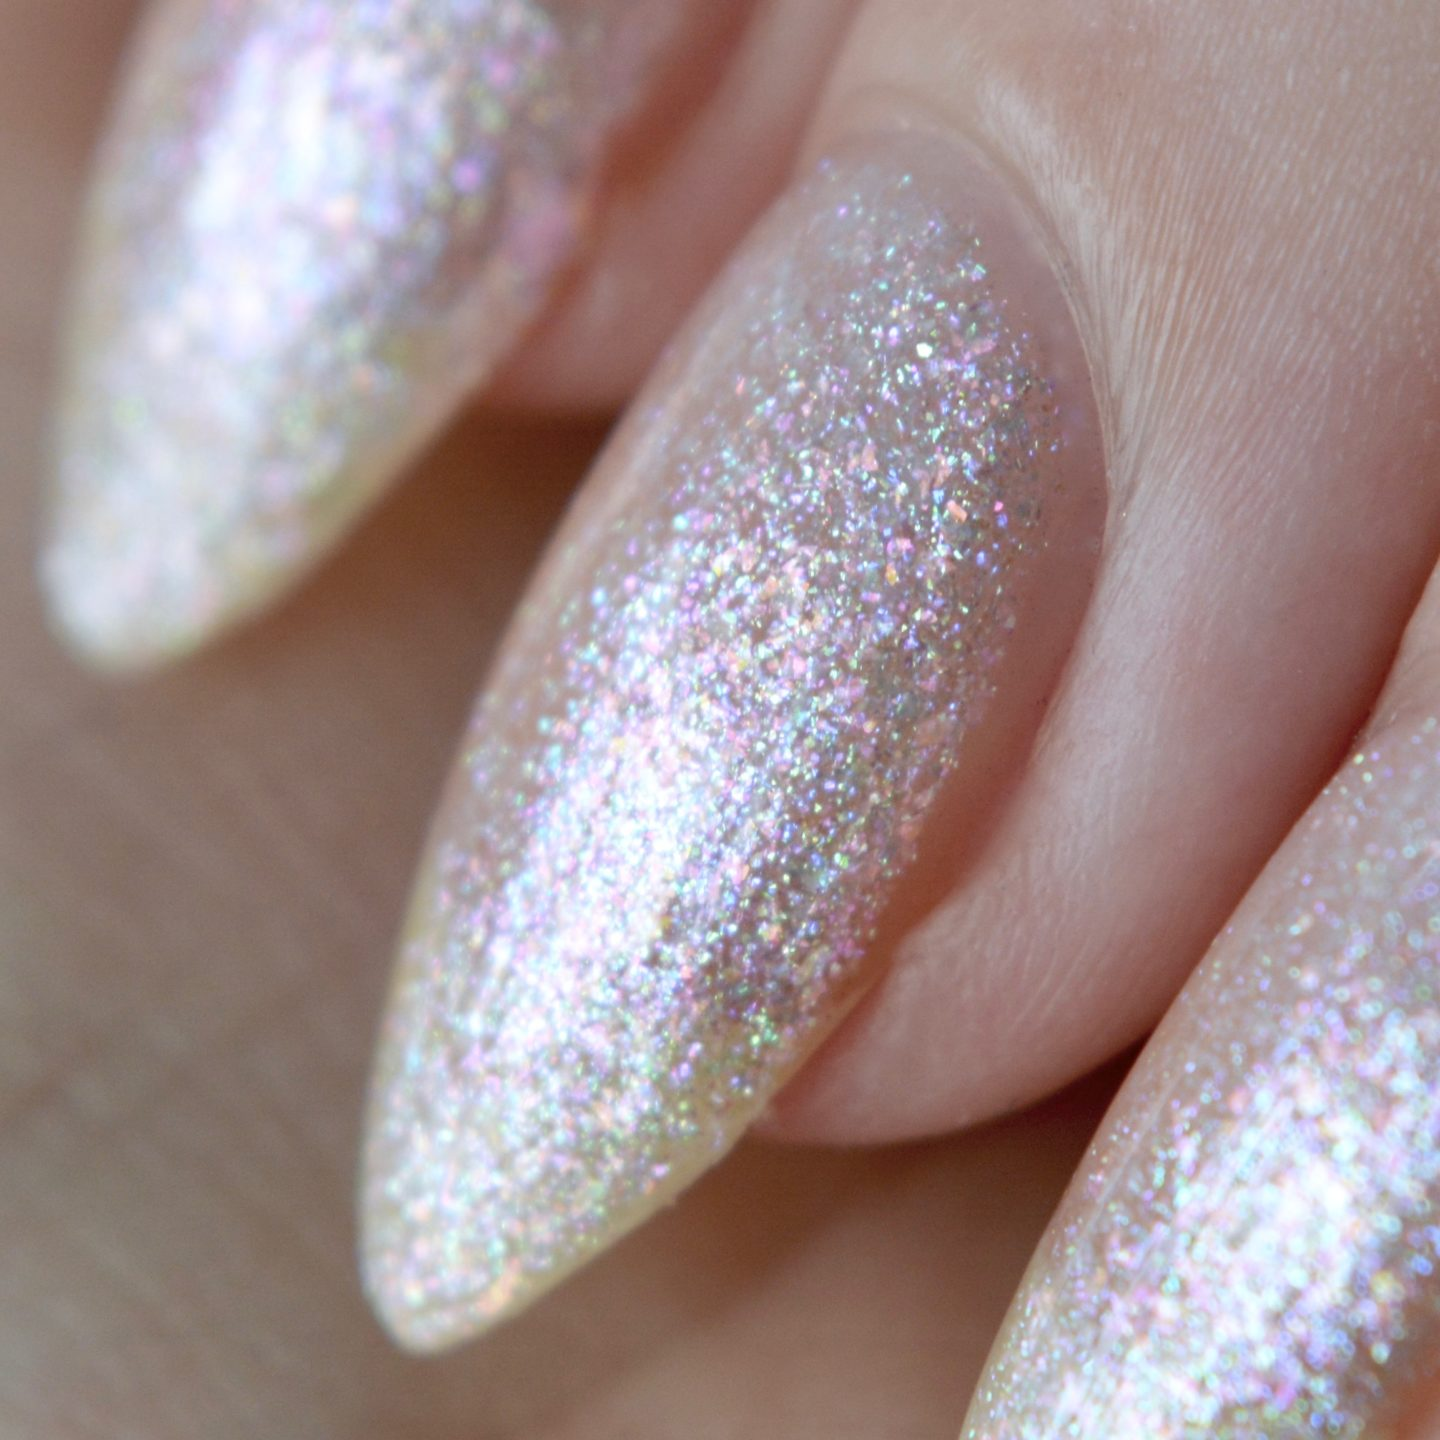 Nails Inc Mindful Manicure swatches 'Balancing Act'